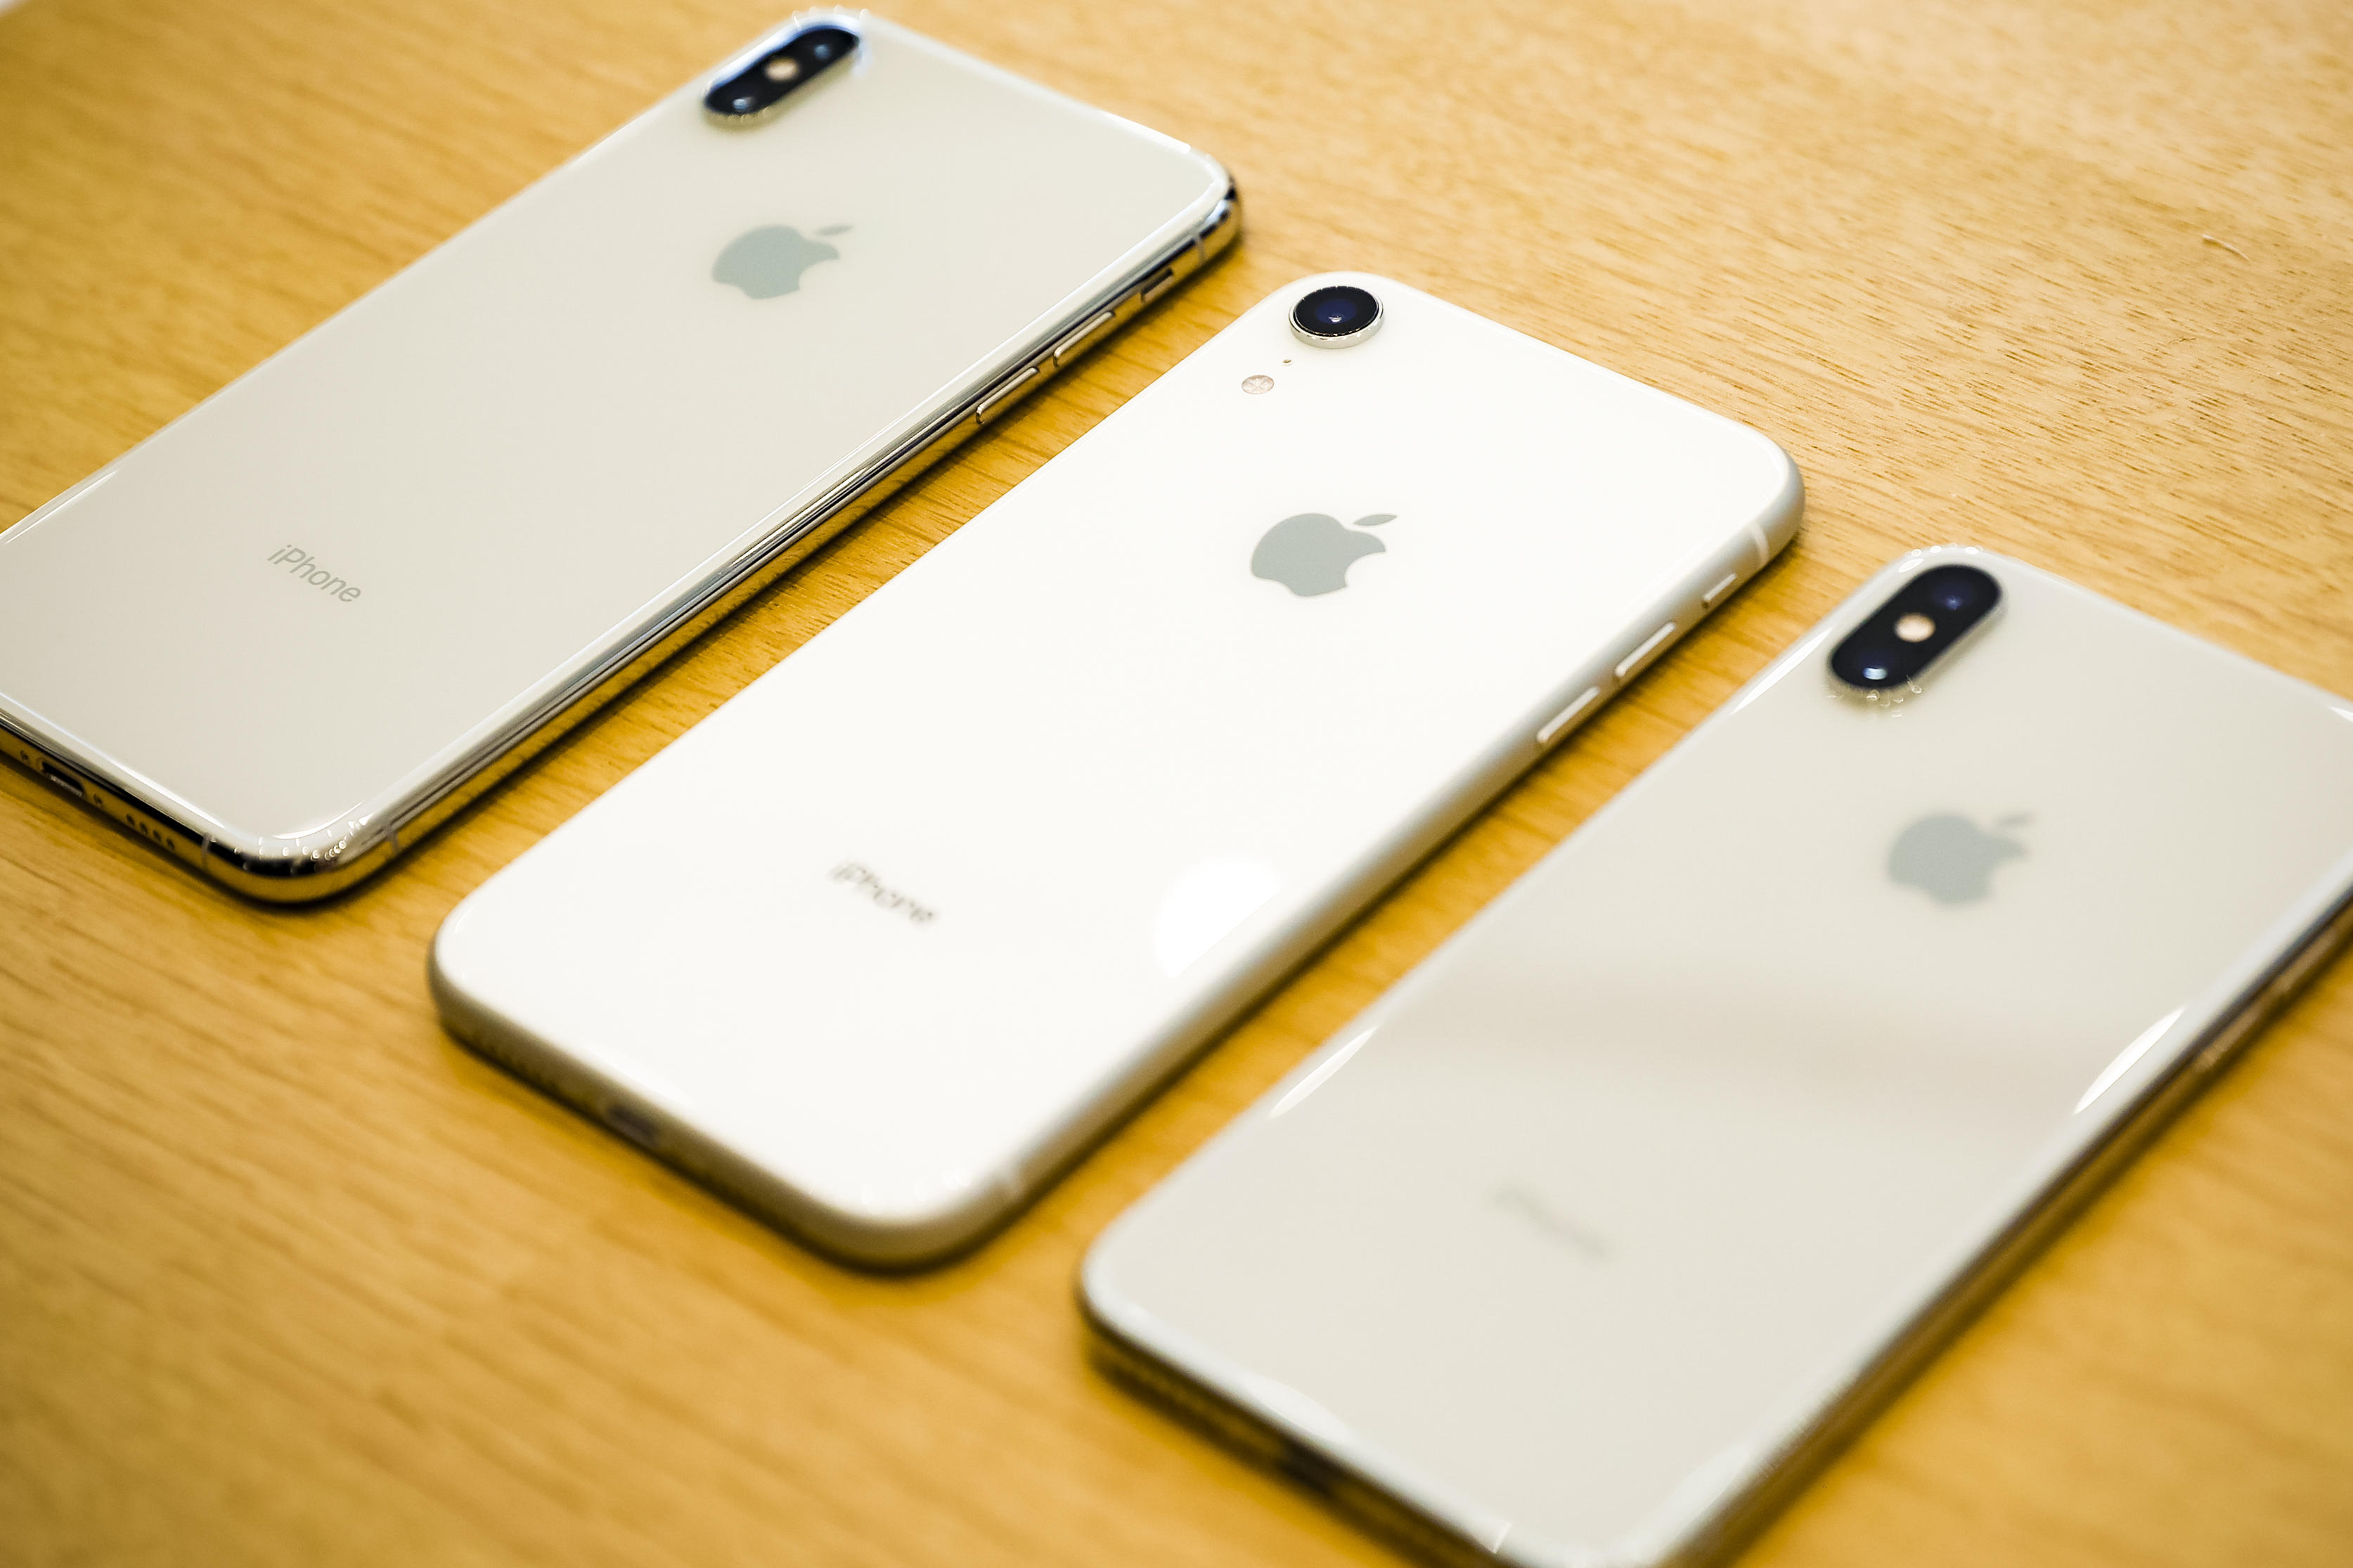 apple-event-091218-compare-iphone-xr-iphone-xs-iphone-xs-max-0873